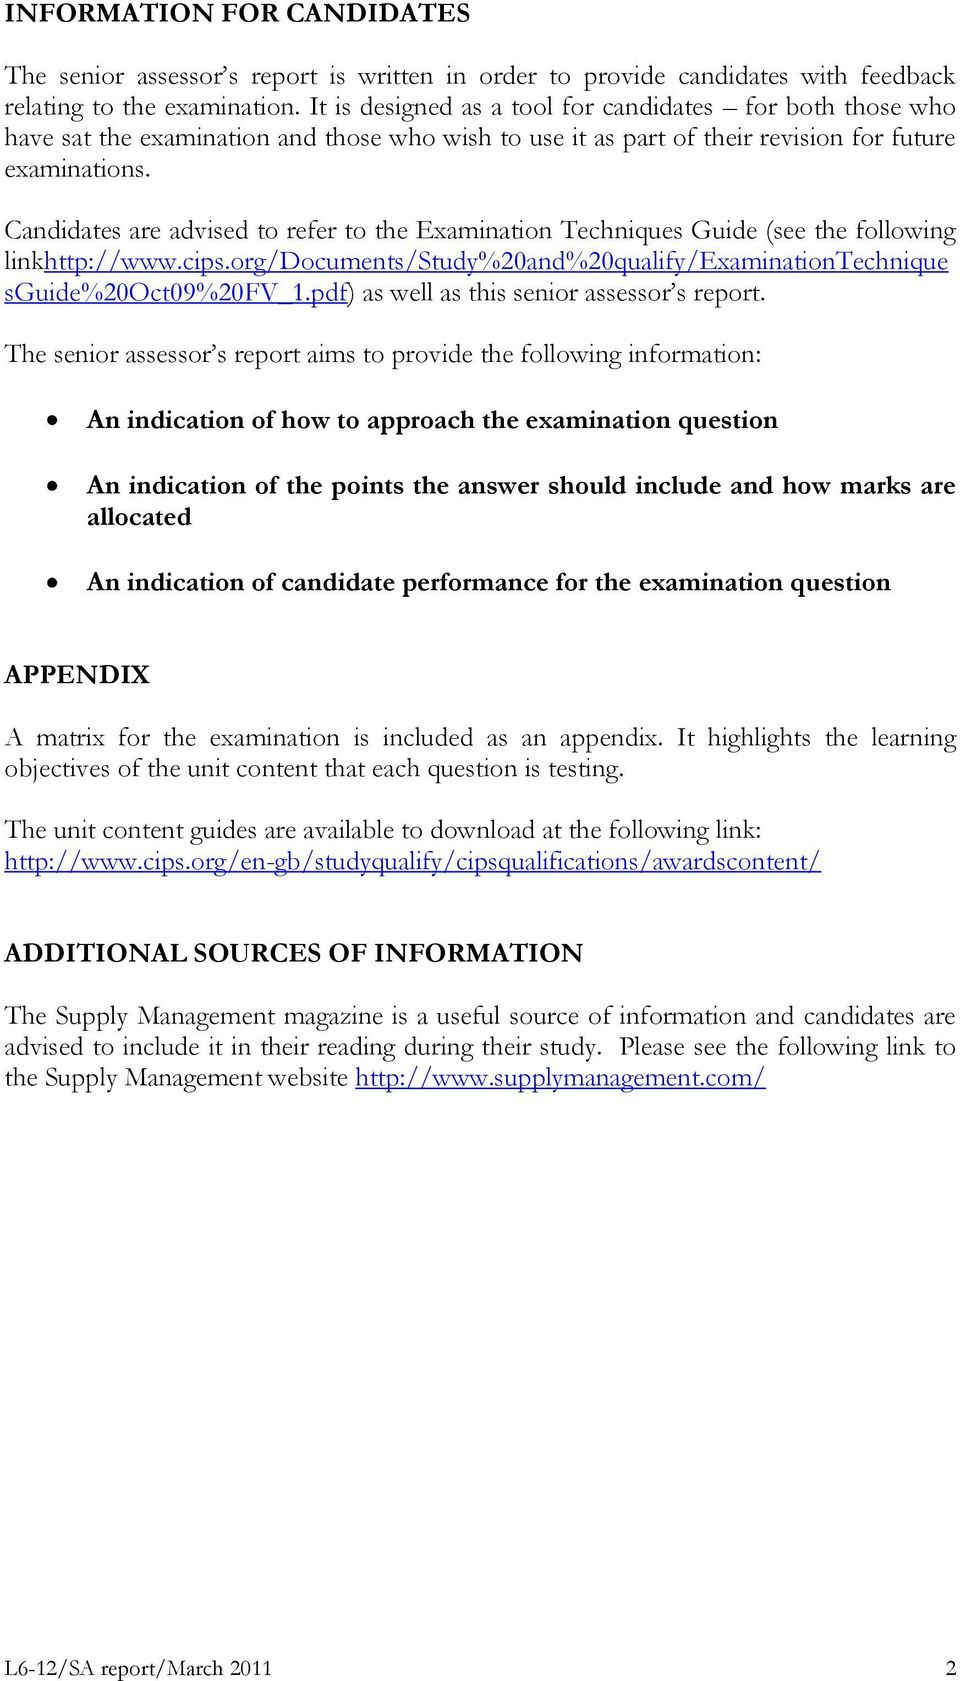 Candidates are advised to refer to the Examination Techniques Guide (see the following linkhttp://www.cips.org/documents/study%20and%20qualify/examinationtechnique sguide%20oct09%20fv_1.